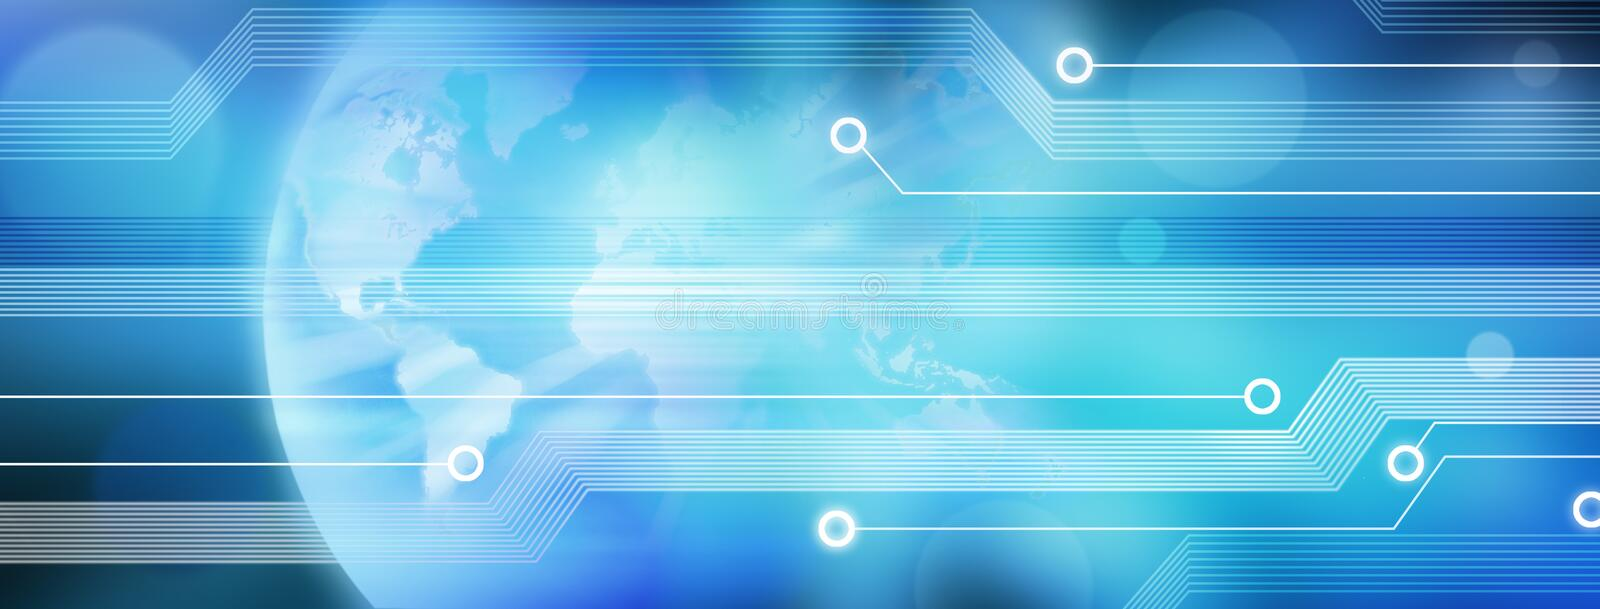 World Technology Business Banner Background royalty free stock photography